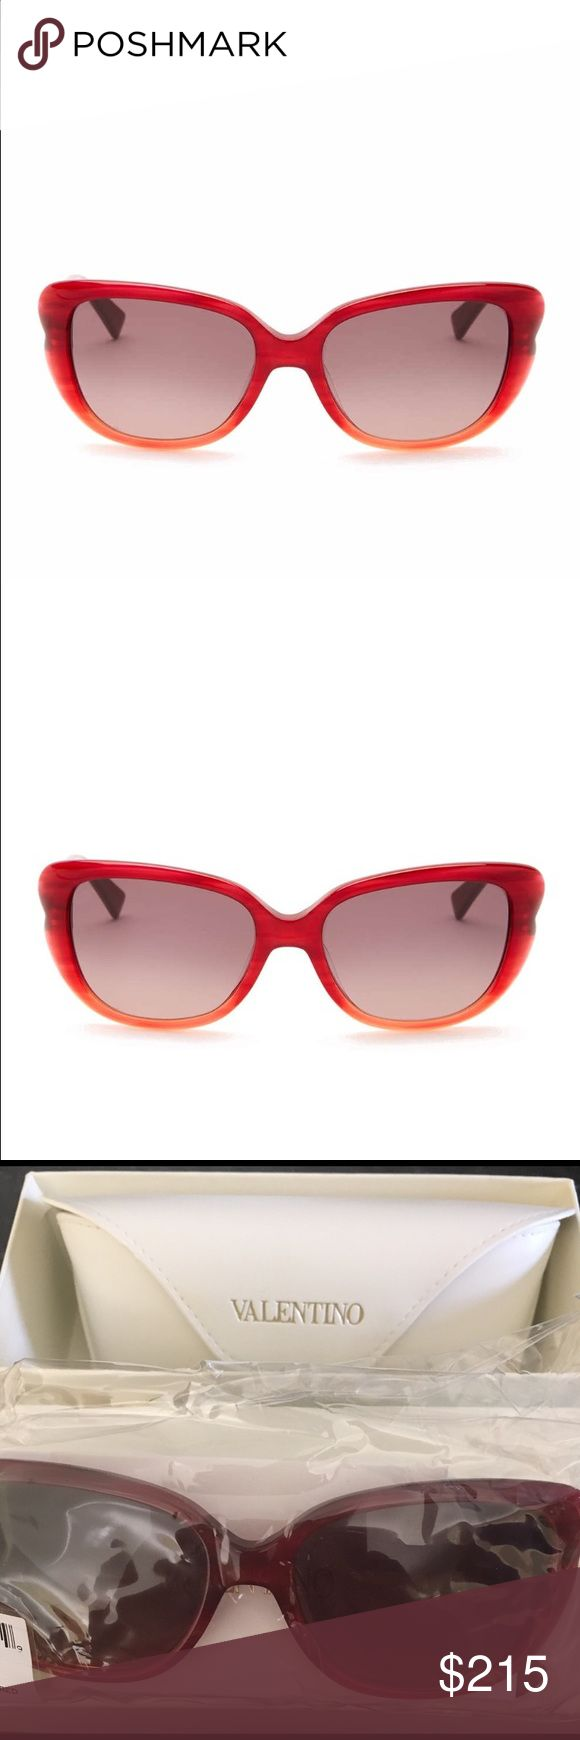 Valentino Women's Cat Eye Sunglasses Valentino Women's Cat Eye Sunglasses.  NWT.  Gorgeous pair of glasses.  Measurement: 54-17135mm (eye-bridge-temple). Frame color:  red/orange.  Lens color: smoke.  Frame material:  acetate.  Lens type:  plastic.  100% UV protection.  Case included.  Made in Italy. Valentino Accessories Glasses